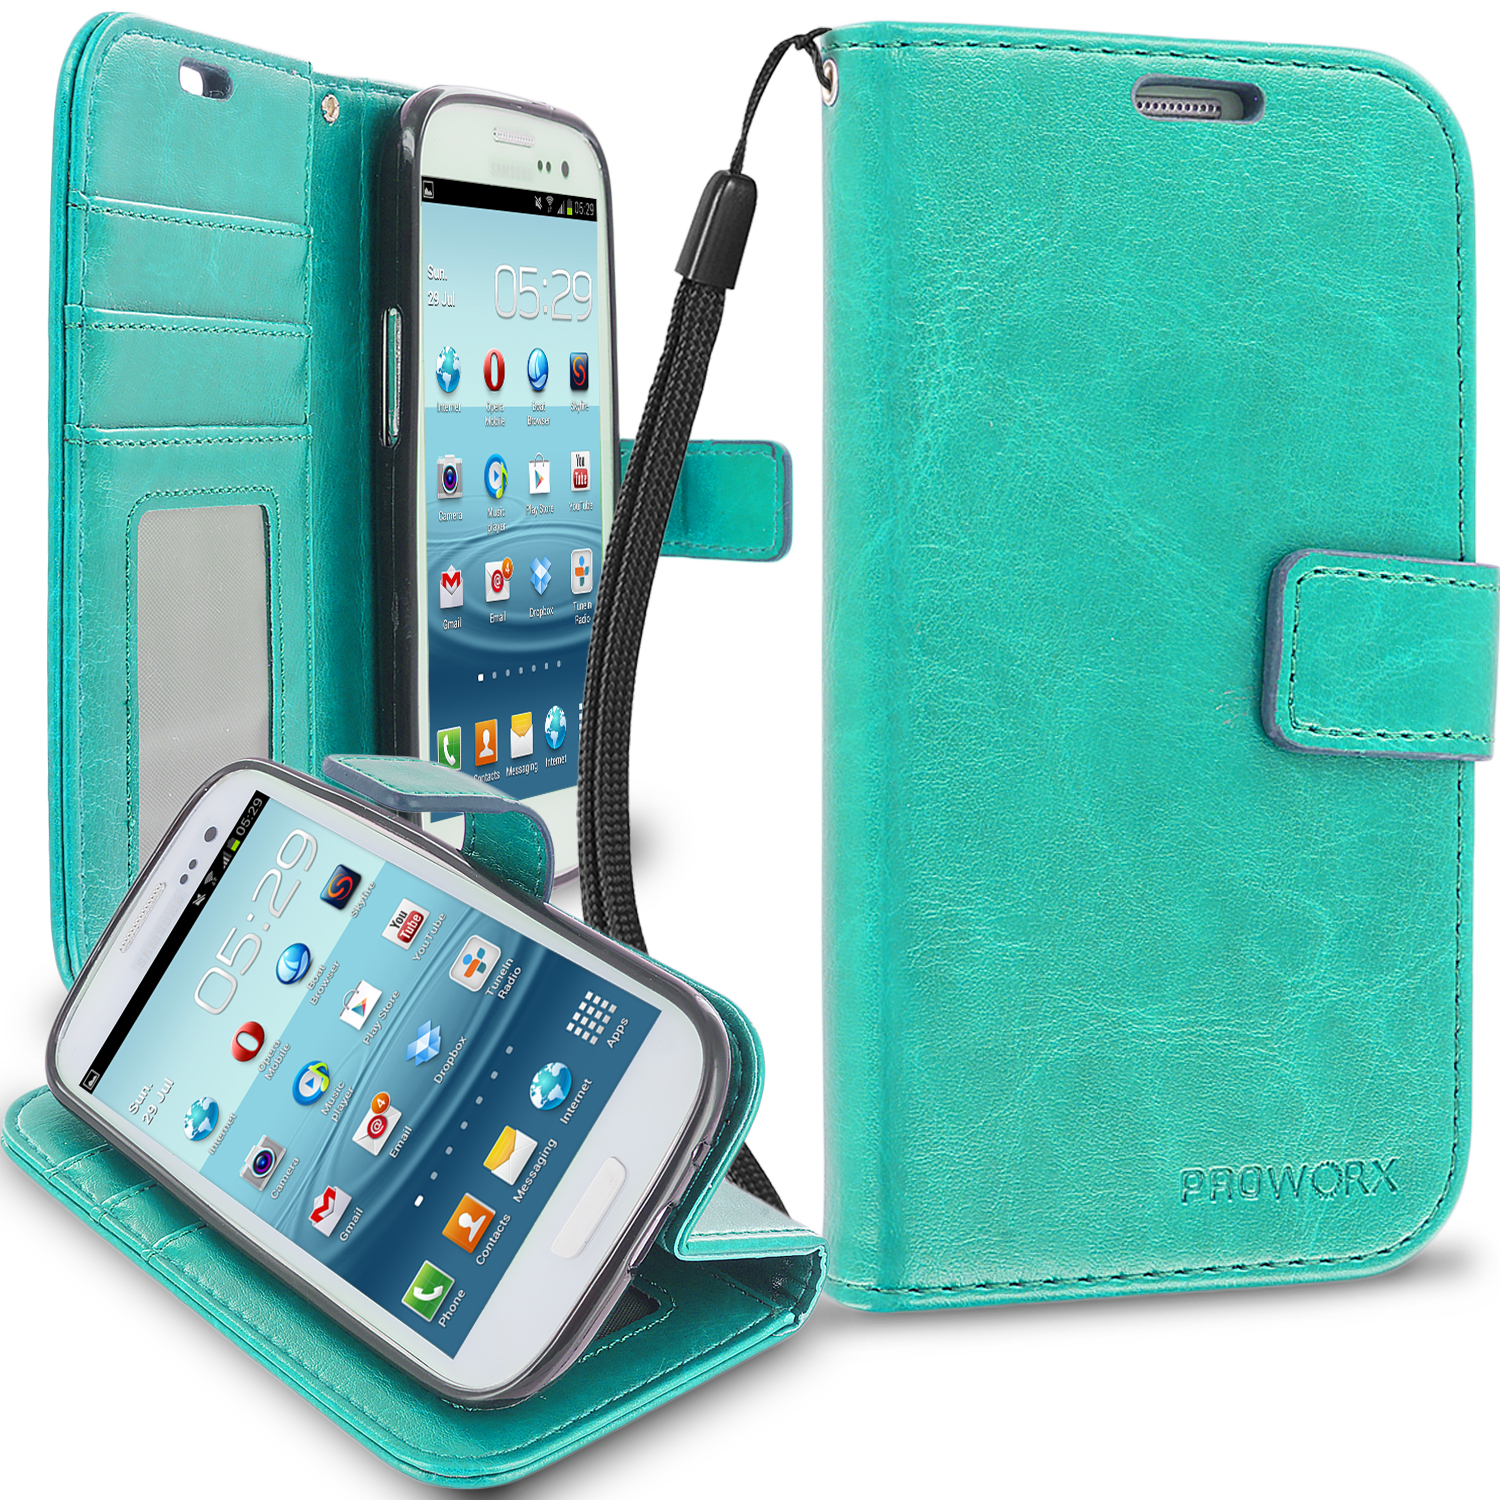 Samsung Galaxy S3 Mint Green ProWorx Wallet Case Luxury PU Leather Case Cover With Card Slots & Stand